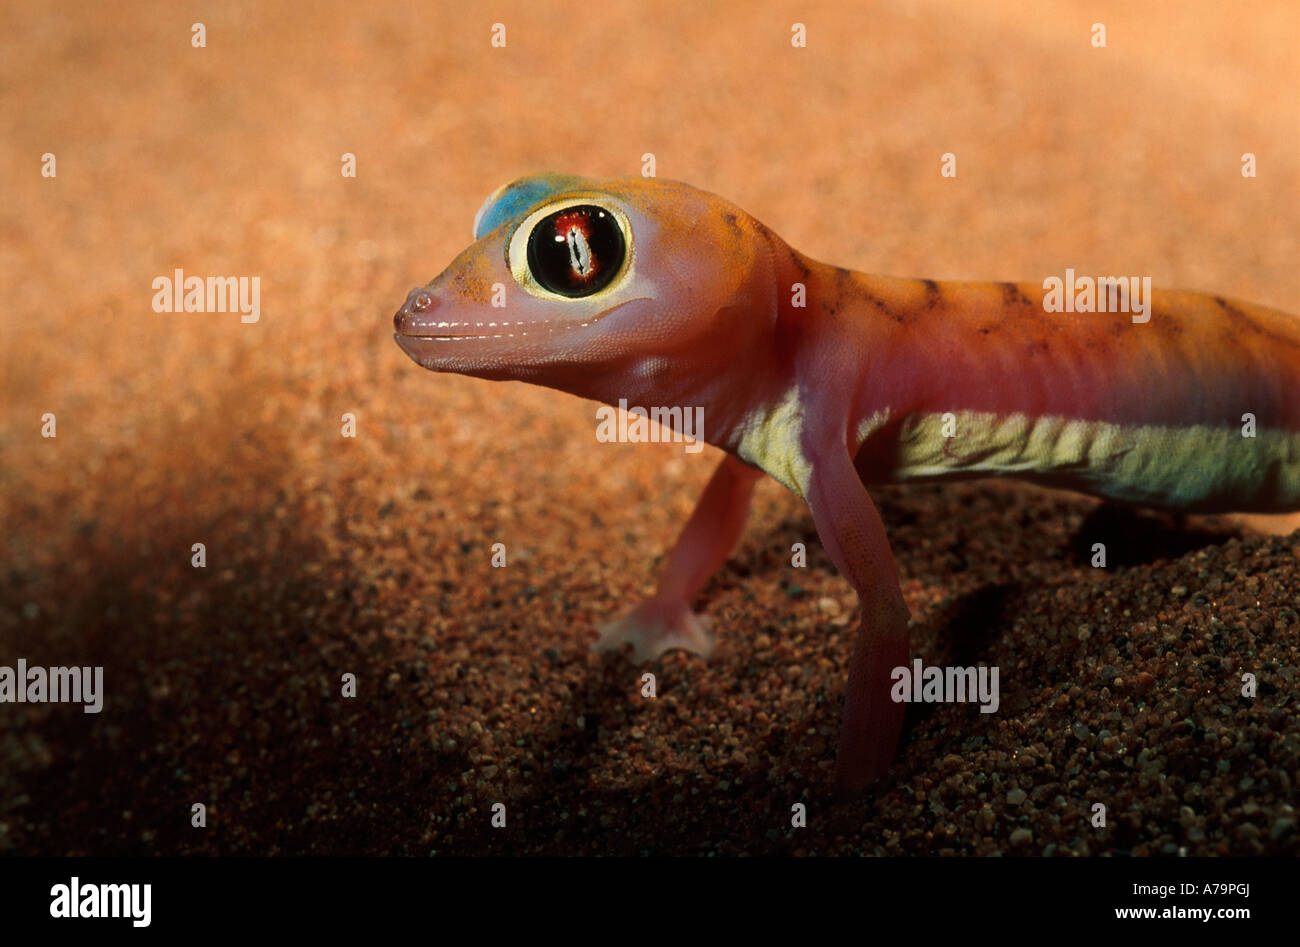 Palmato gecko portrait near Sesriem Namib Desert Namibia Stock Photo